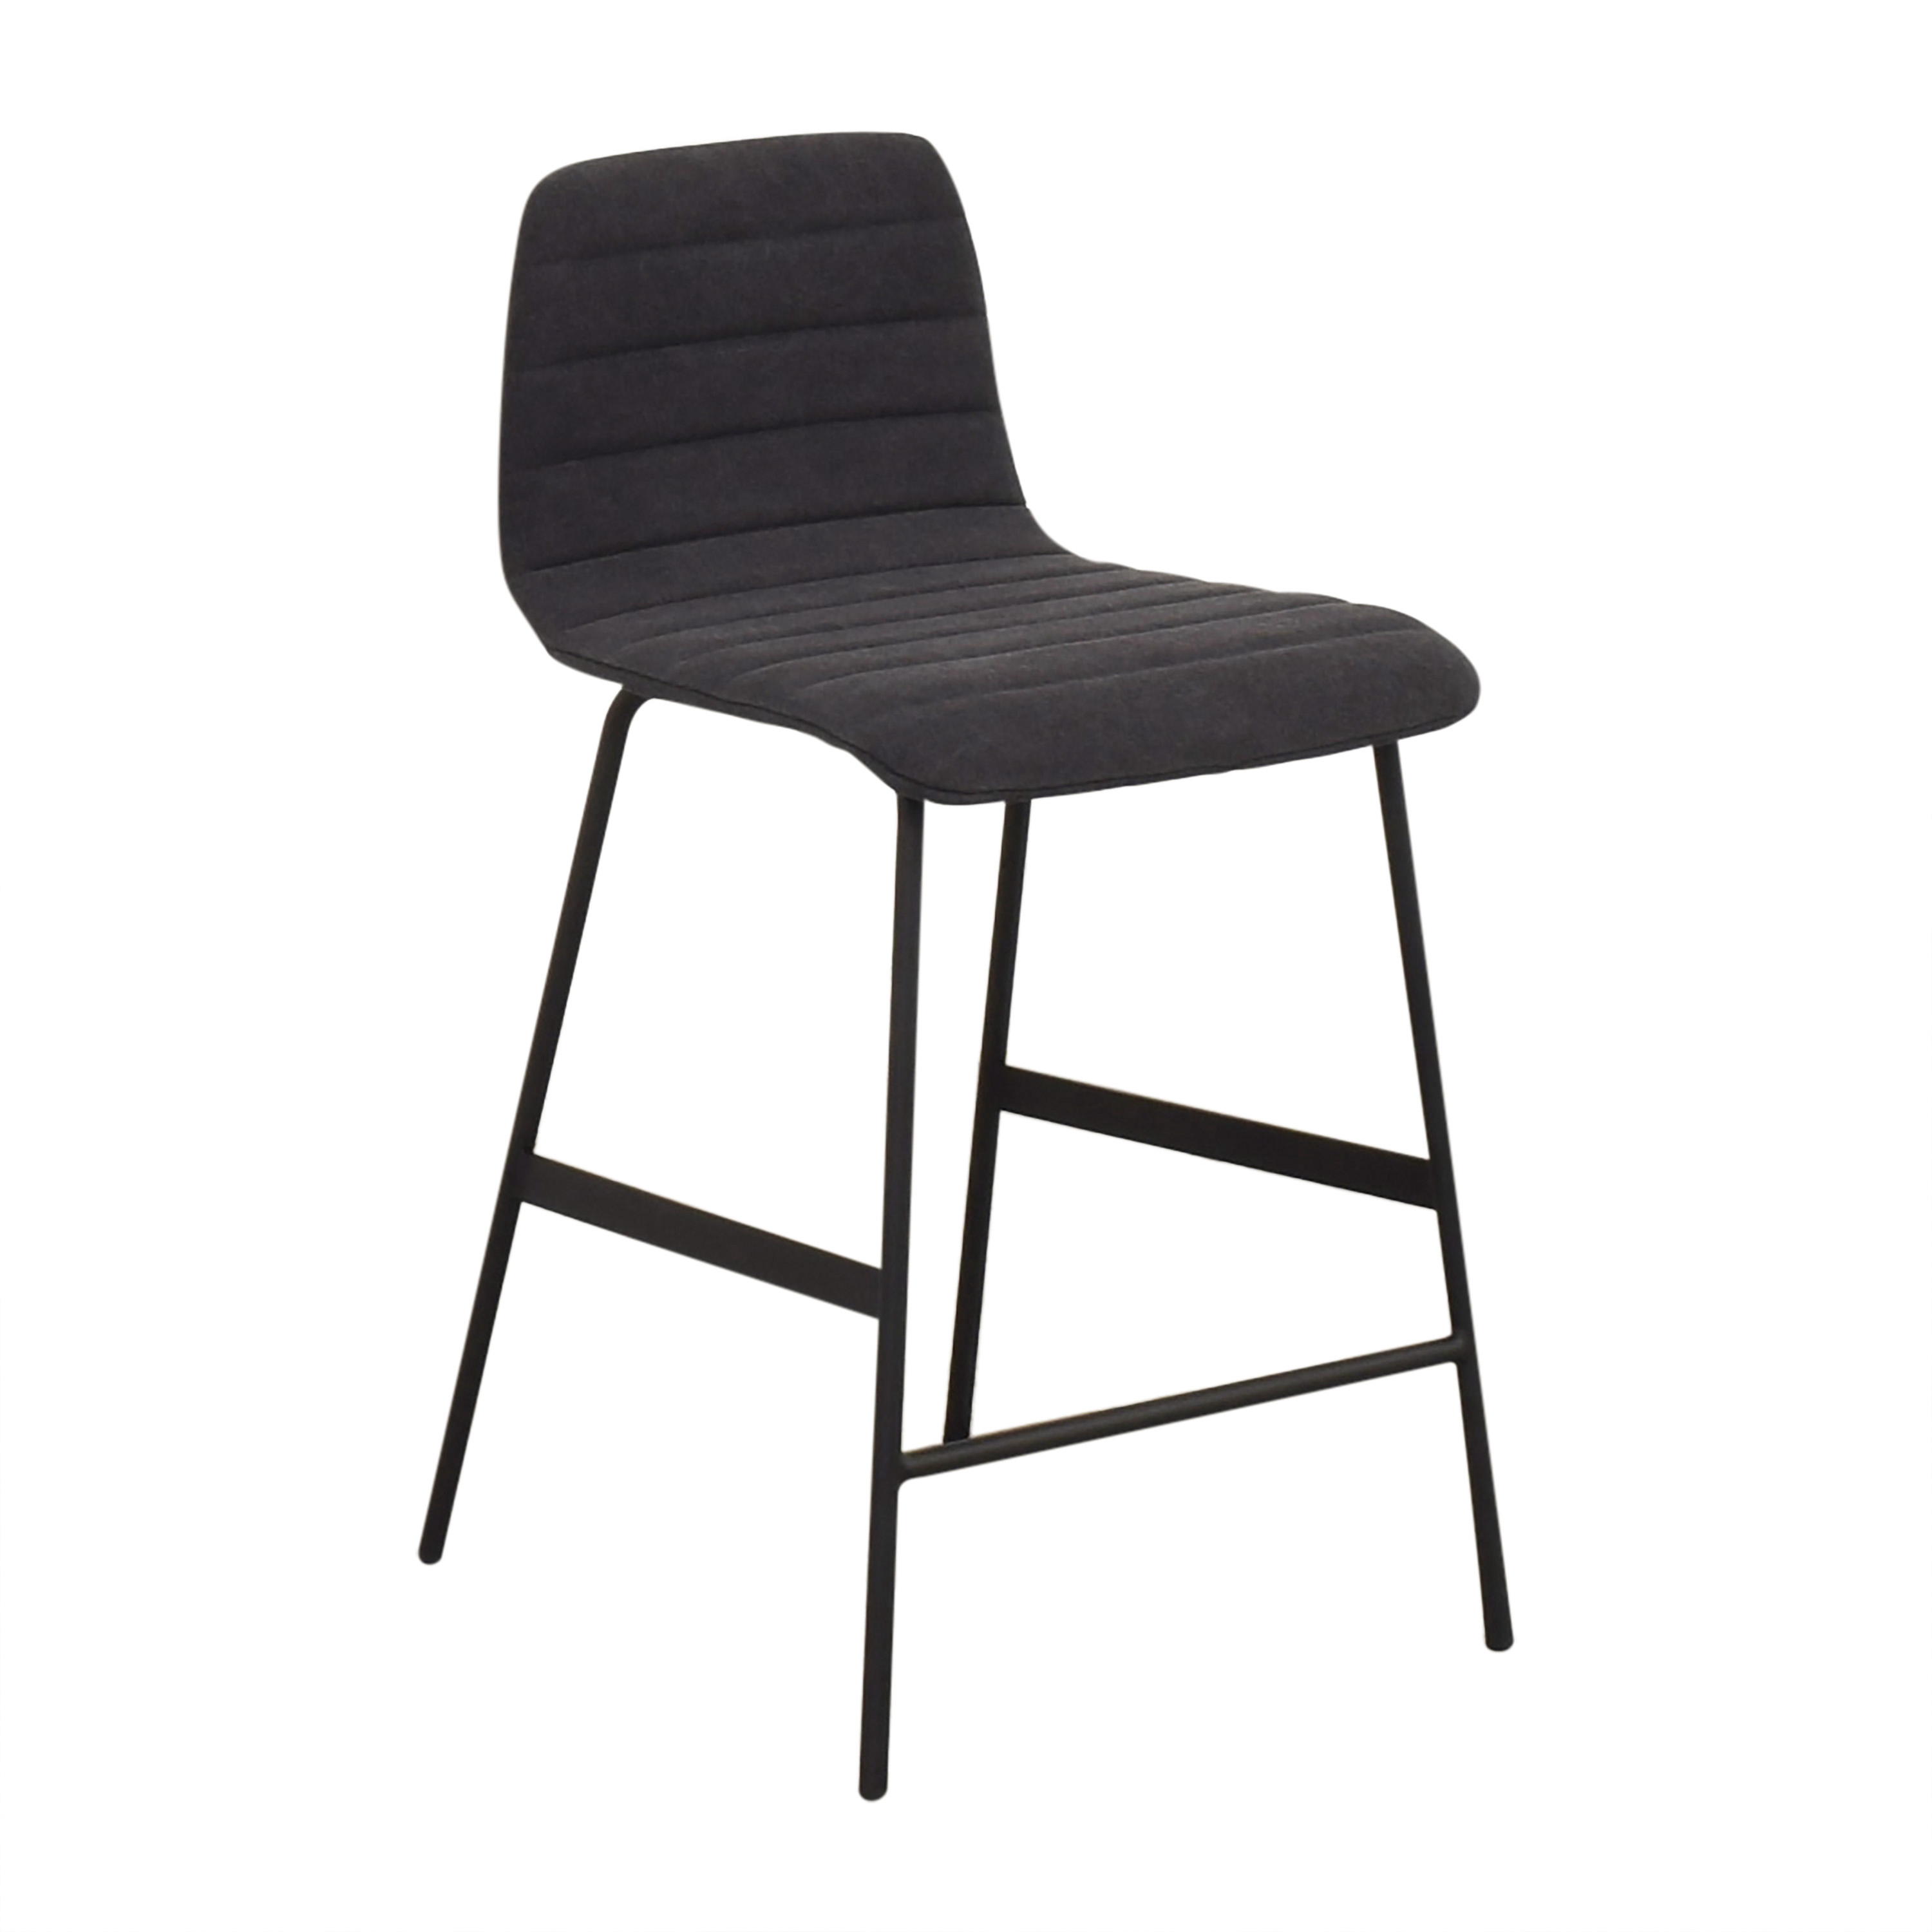 buy Gus Modern Lecture Stool Gus Modern Chairs